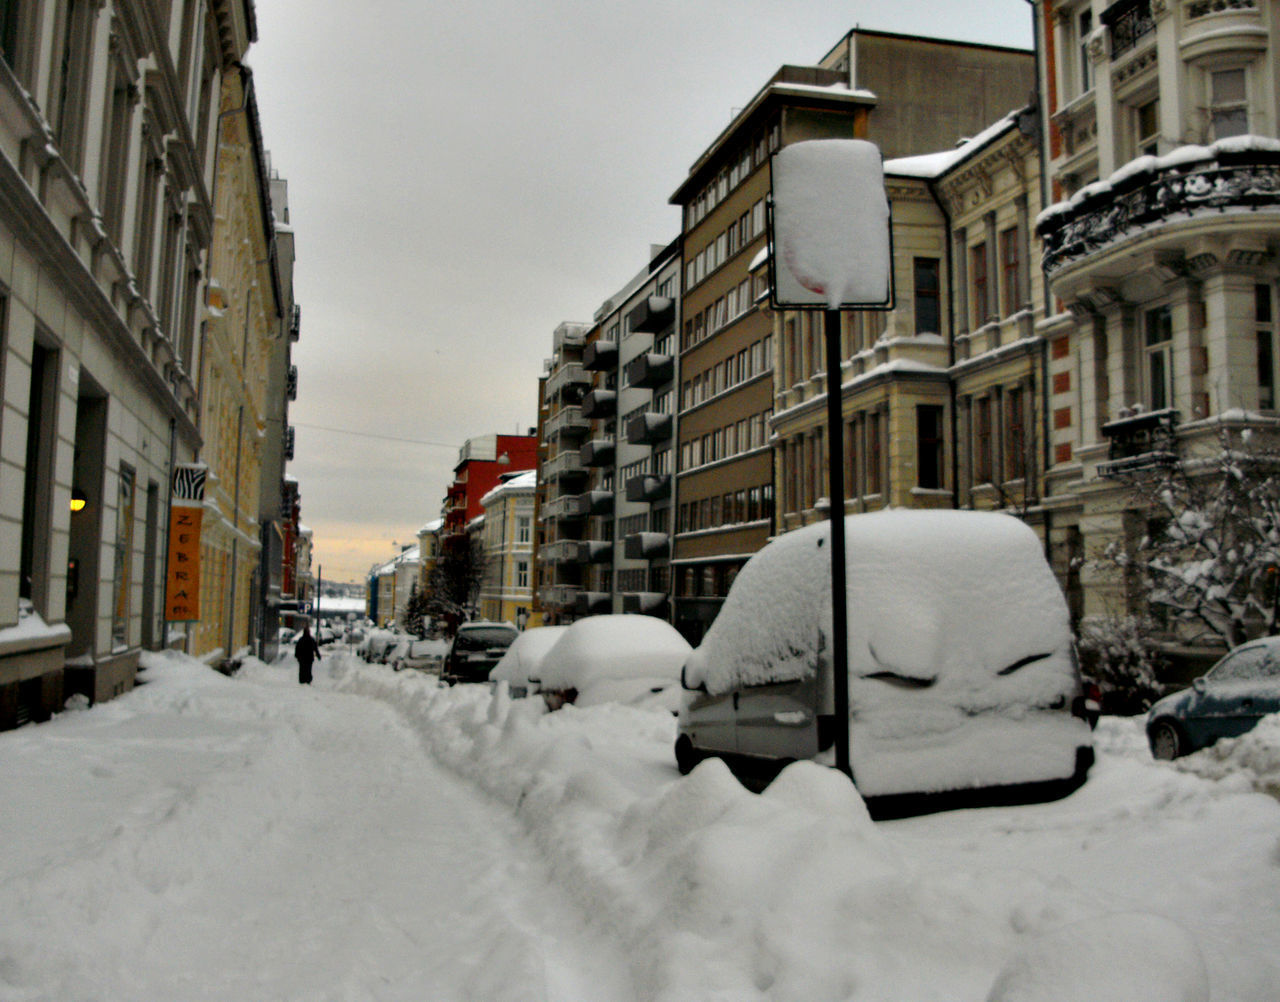 snow, cold temperature, winter, building exterior, built structure, architecture, city, nature, building, mode of transportation, white color, covering, car, motor vehicle, land vehicle, day, transportation, residential district, sky, no people, outdoors, snowing